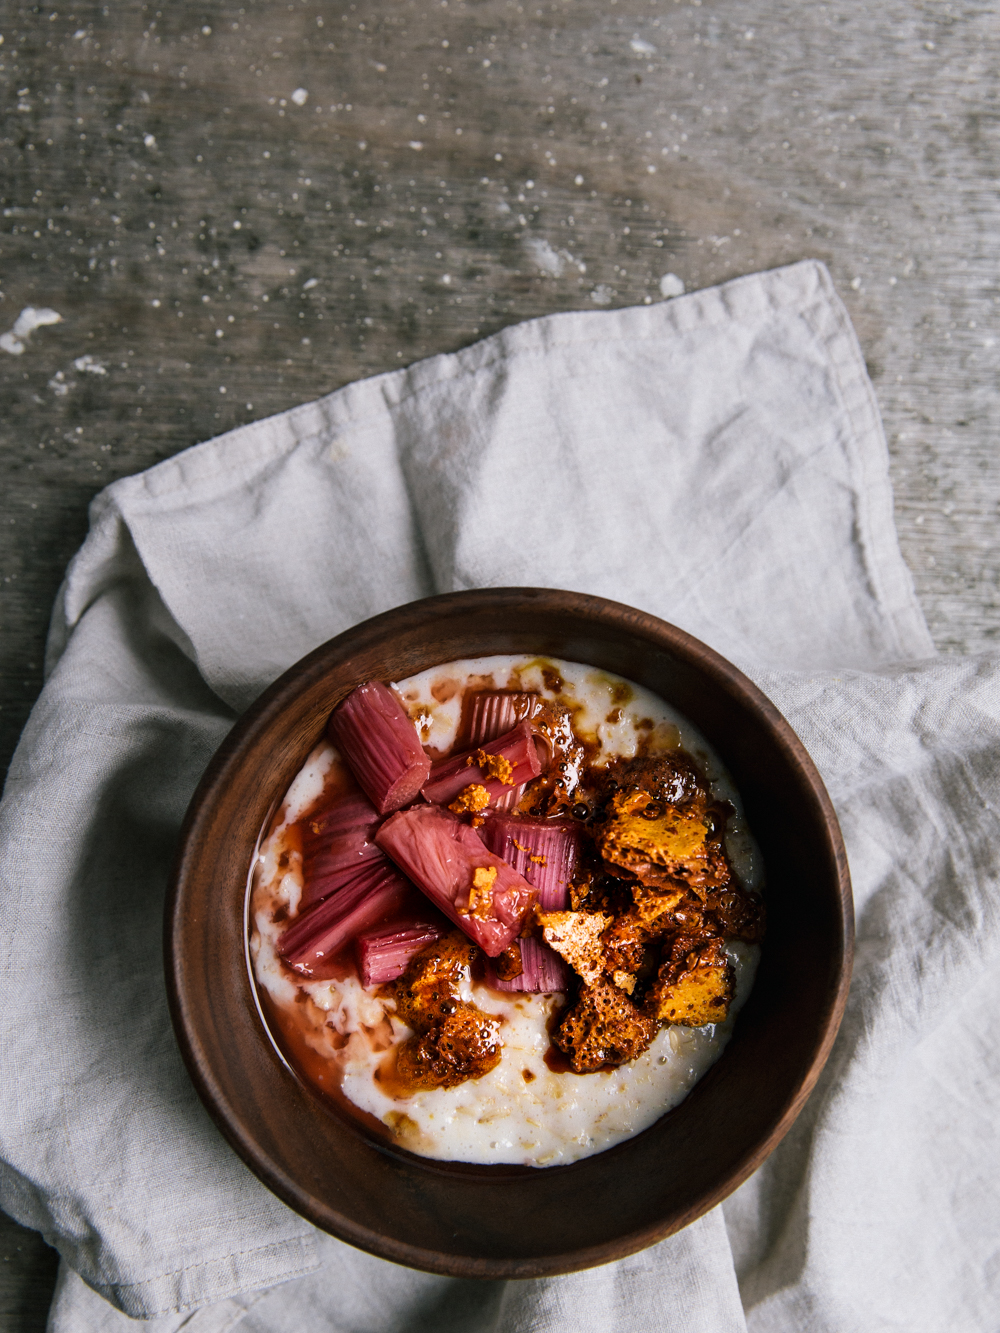 Rhubarb and Honeycomb Porridge